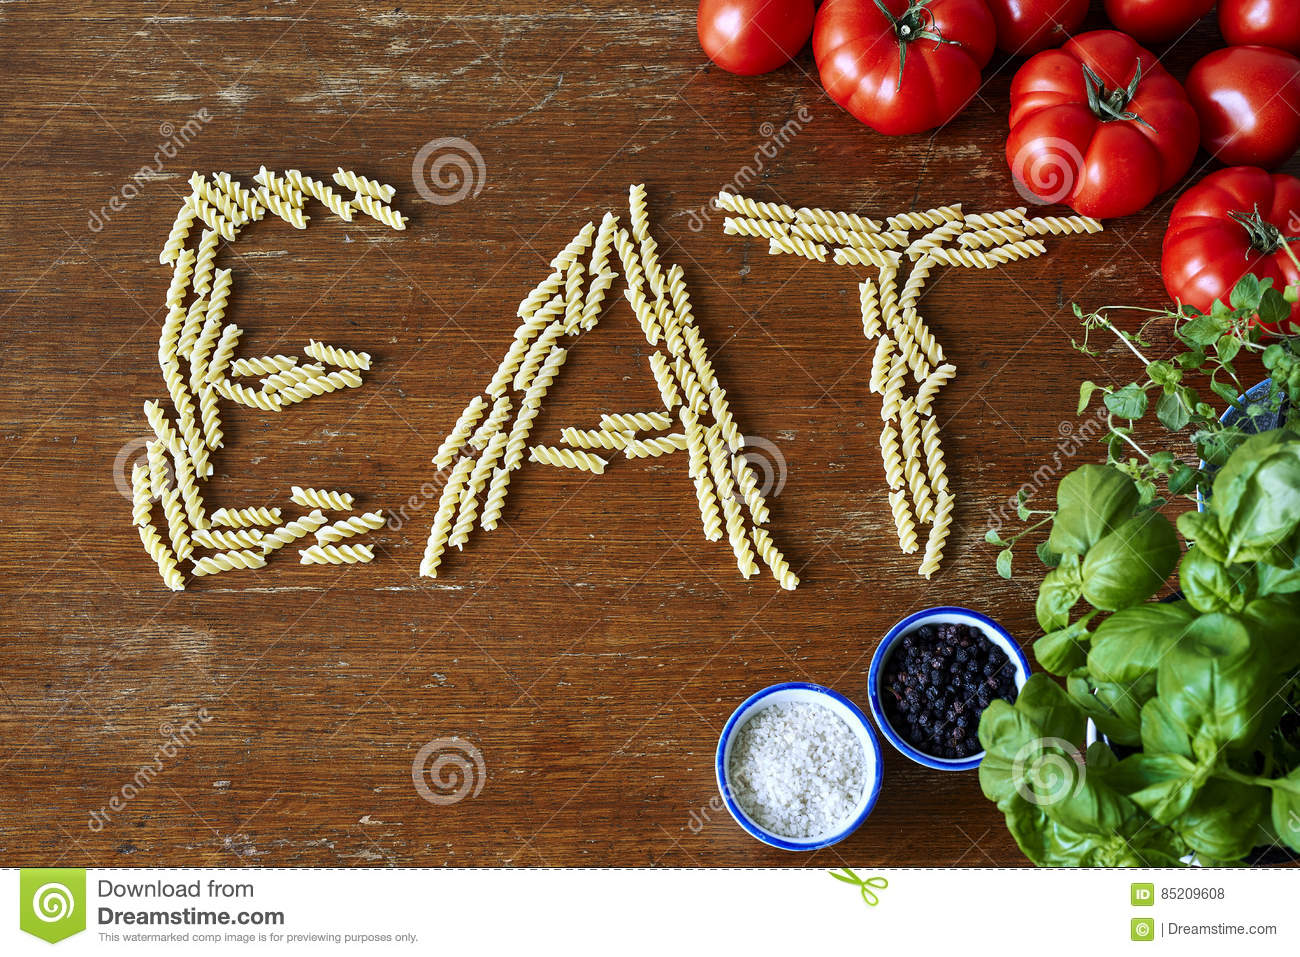 Fusilli Pasta Tomatoes And Herbs Forming The Word Eat Stock Photo